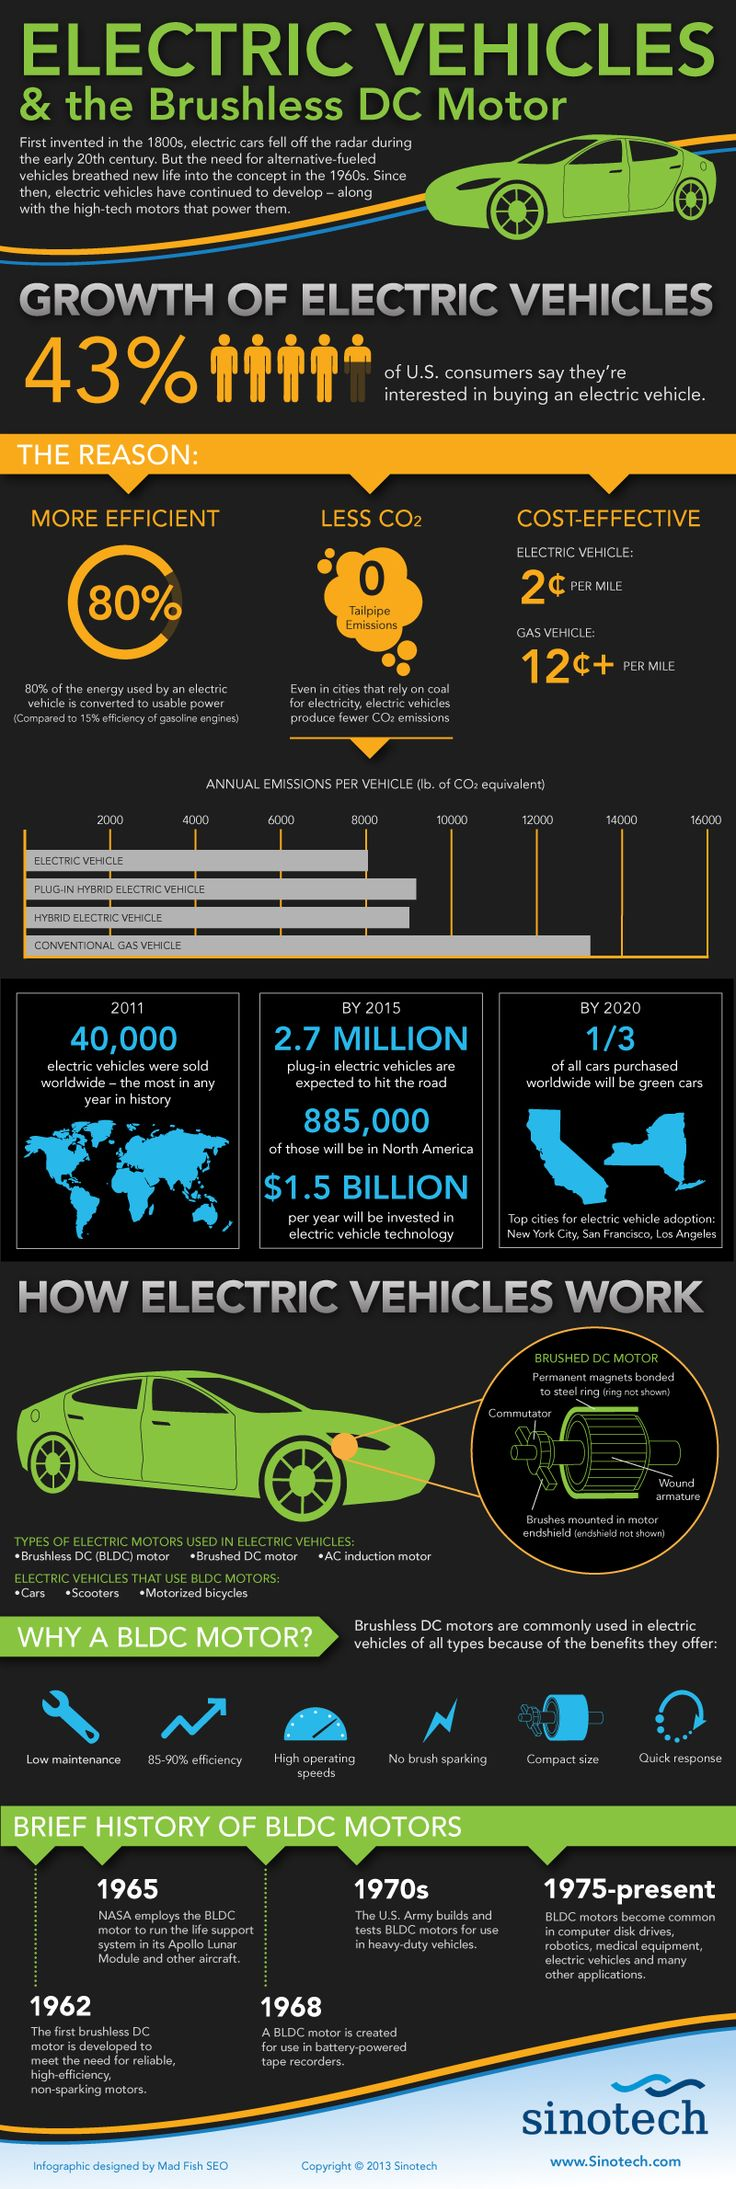 Electric Vehicles and the Brushless DC Motor [INFOGRAPHIC]